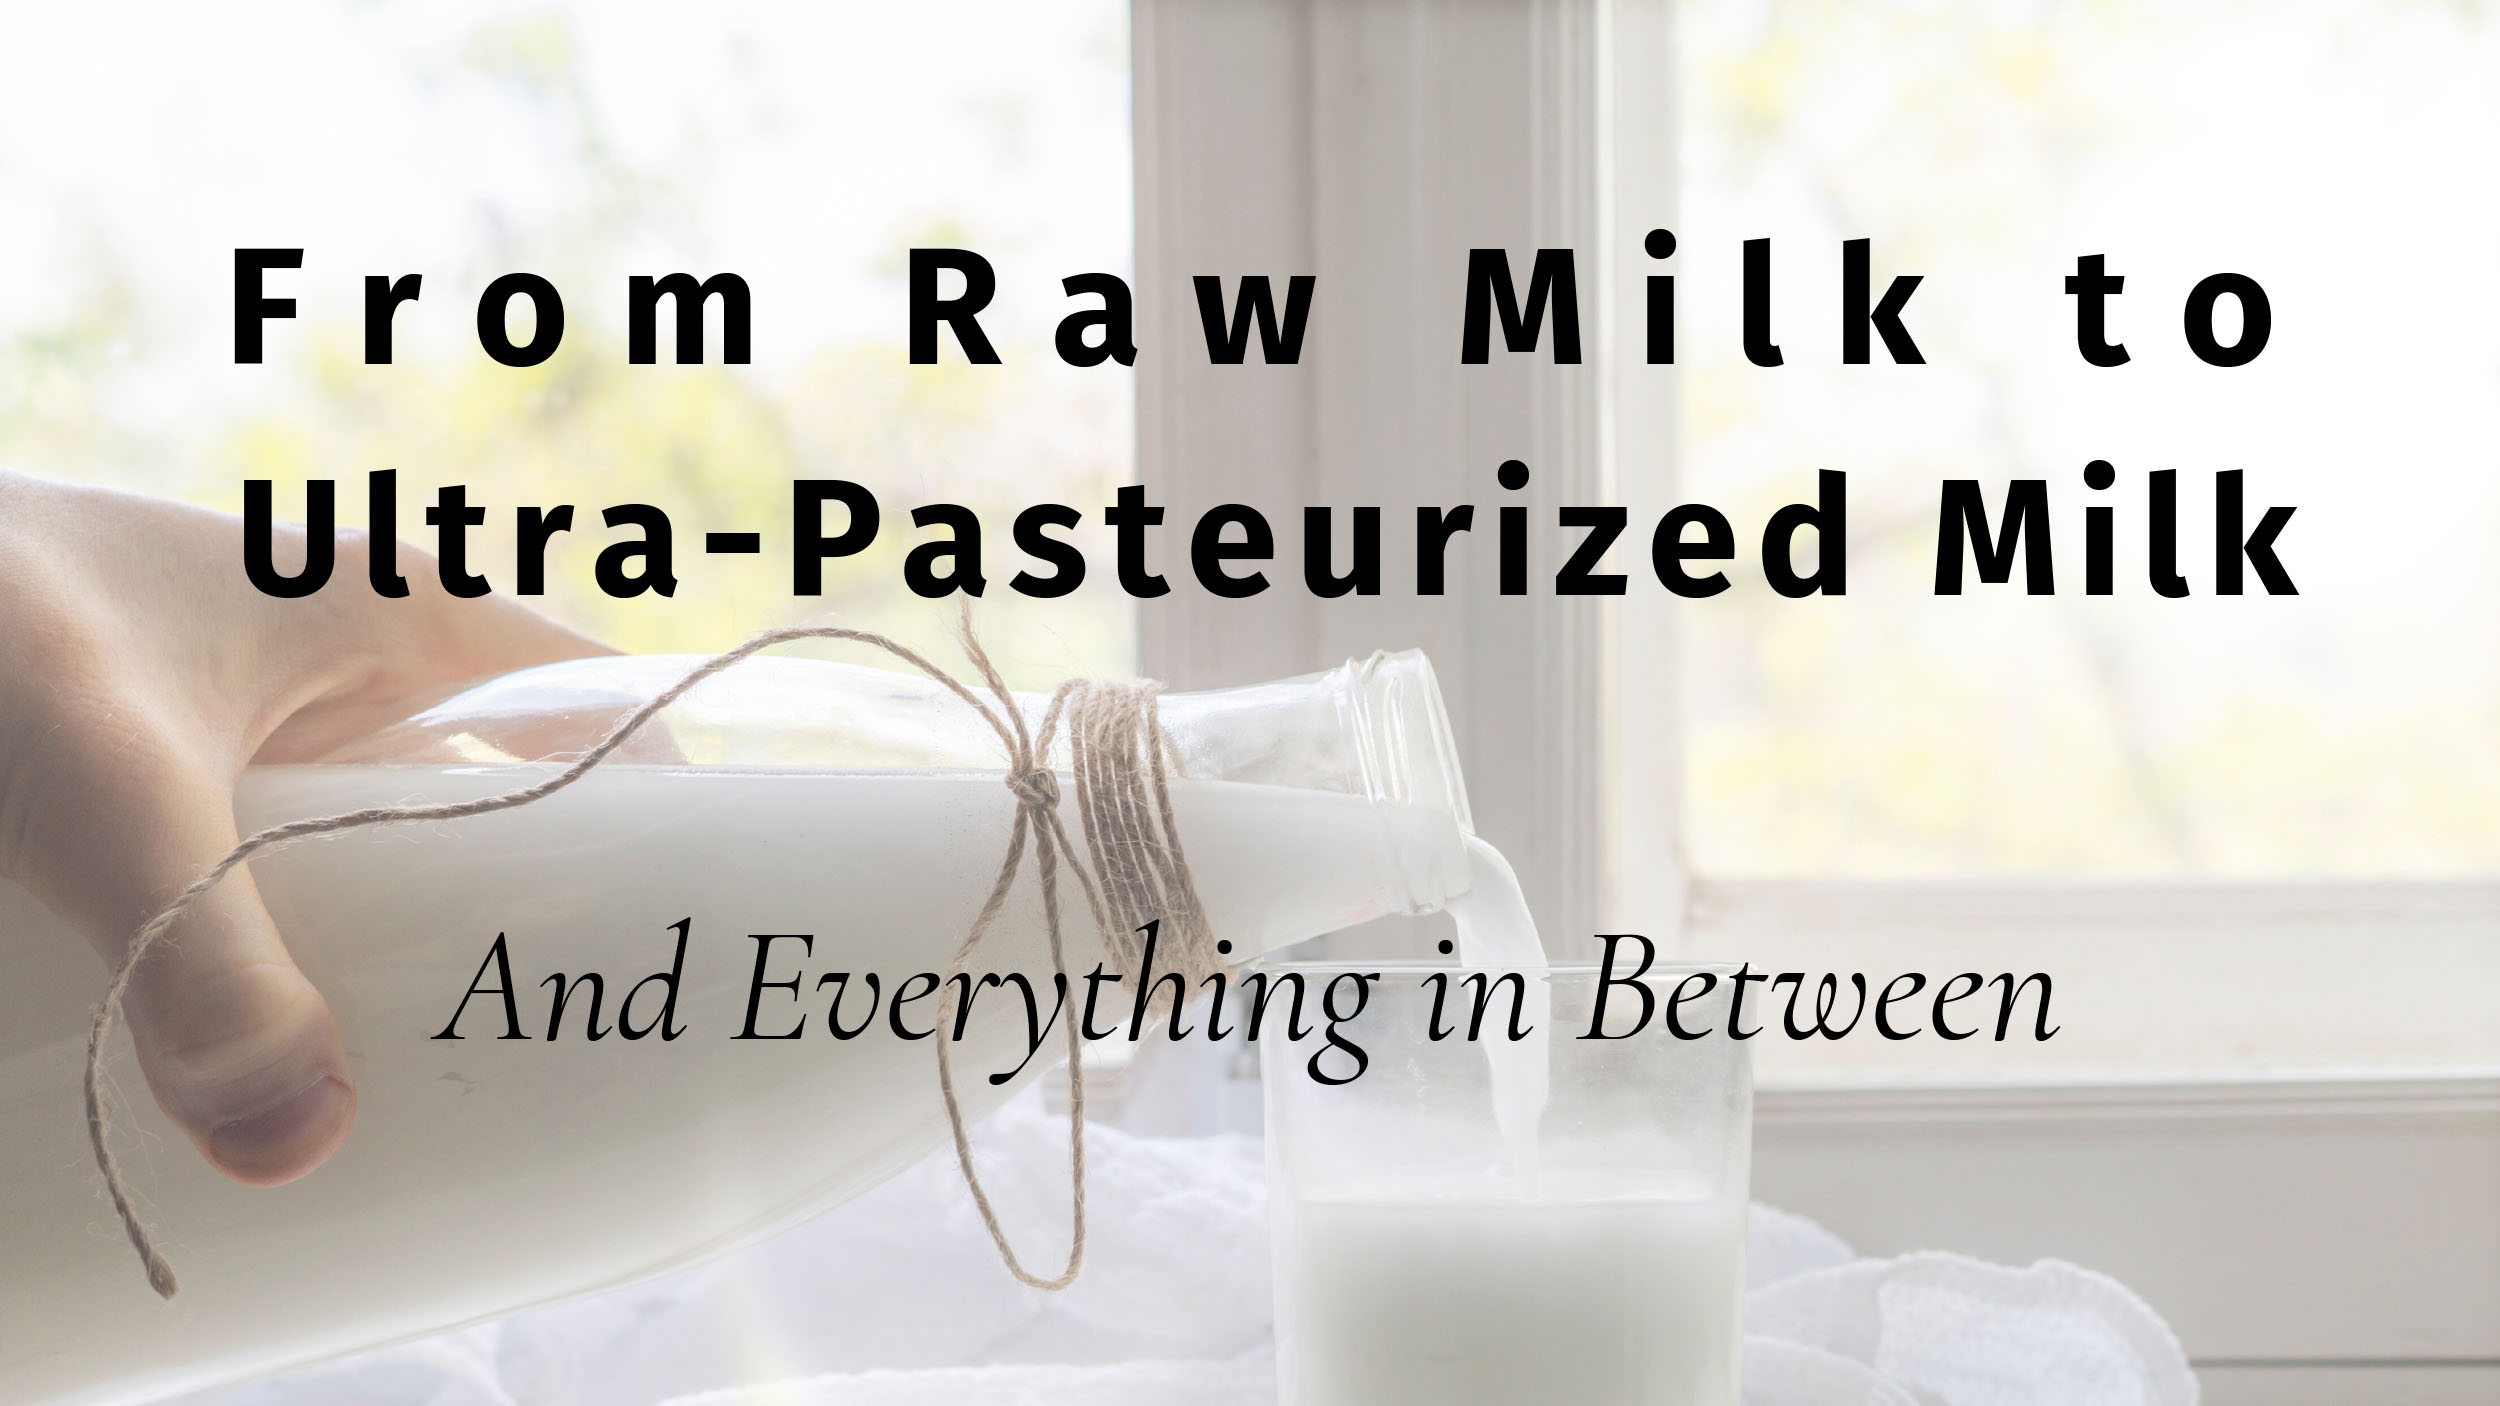 From Raw Milk to Ultra-Pasteurized Milk